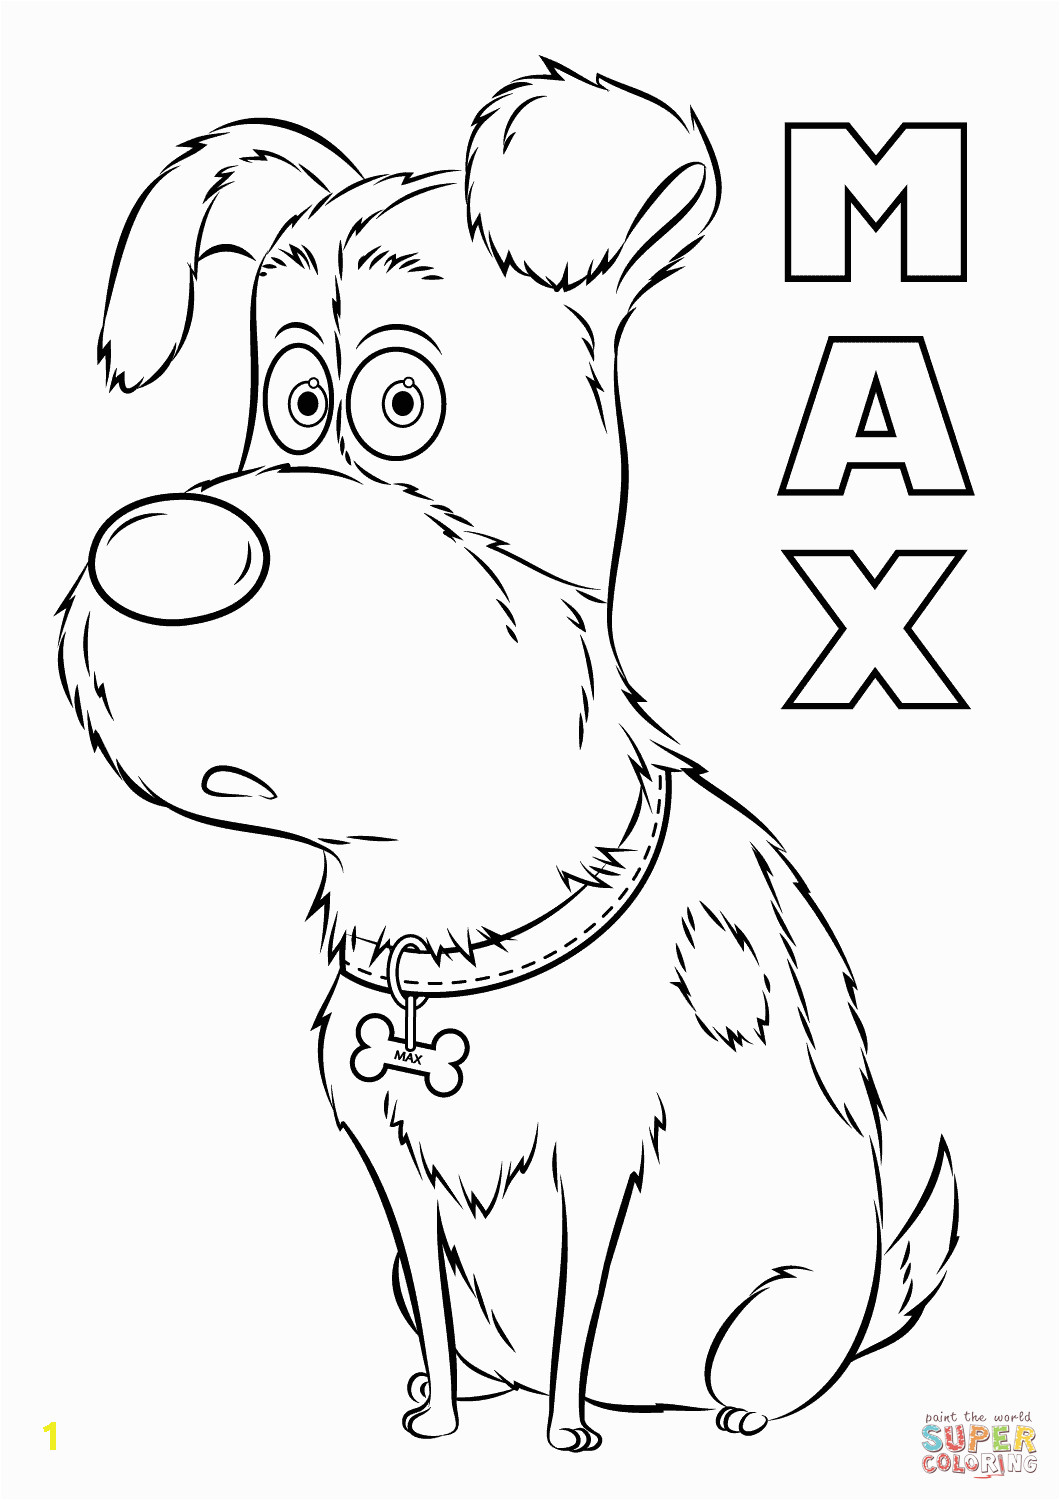 Secret Life Of Pets Printable Coloring Pages Max From the Secret Life Of Pets Coloring Page